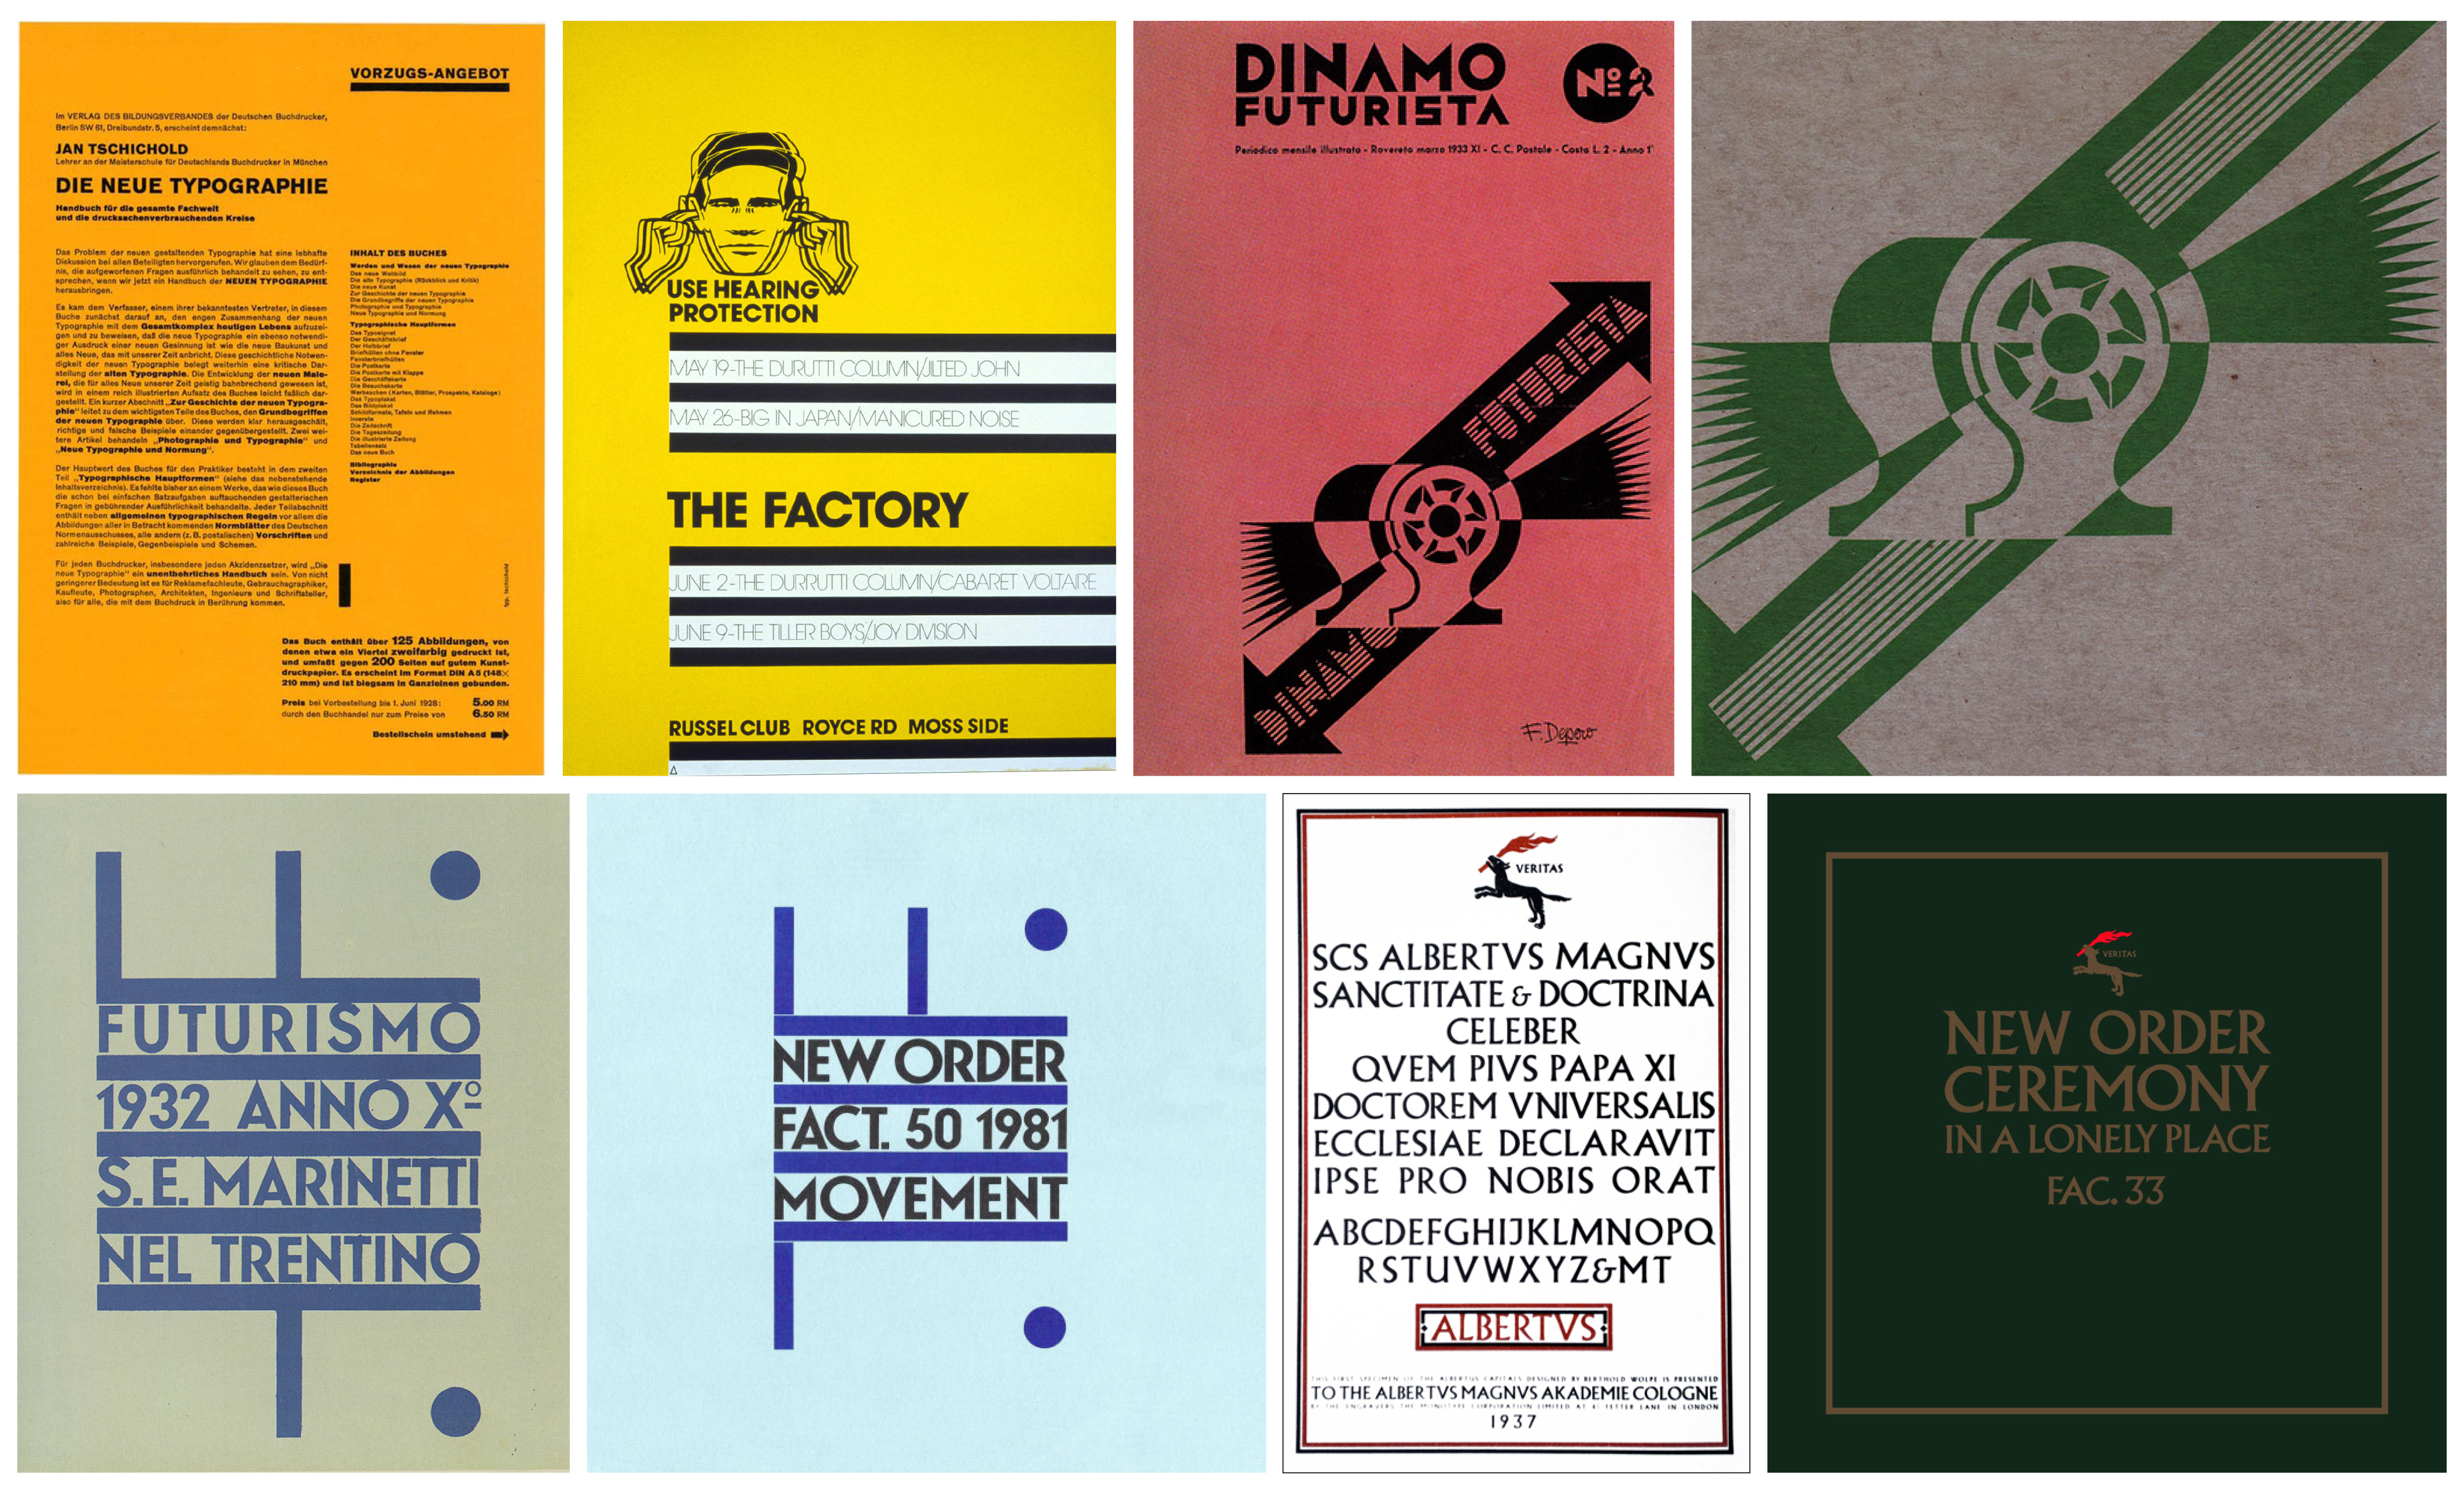 De gauche à droite et de haut en bas, les sources des citations de Saville : Jan Tschichold, Die Neue typographie, 1928. Peter Saville, FAC 1, The Factory, 1978. Fortunato Depero, Dinamo Futurista, 1933. Peter Saville, FAC 53, Procession, sep. 1981. Fortunato Depero, Futurismo, 1932. Peter Saville, FACT 50, Movement, nov. 1981. Berthold Wolpe, Albertus specimen, 1937. Peter Saville, FAC 33, Ceremony, mar. 1981.